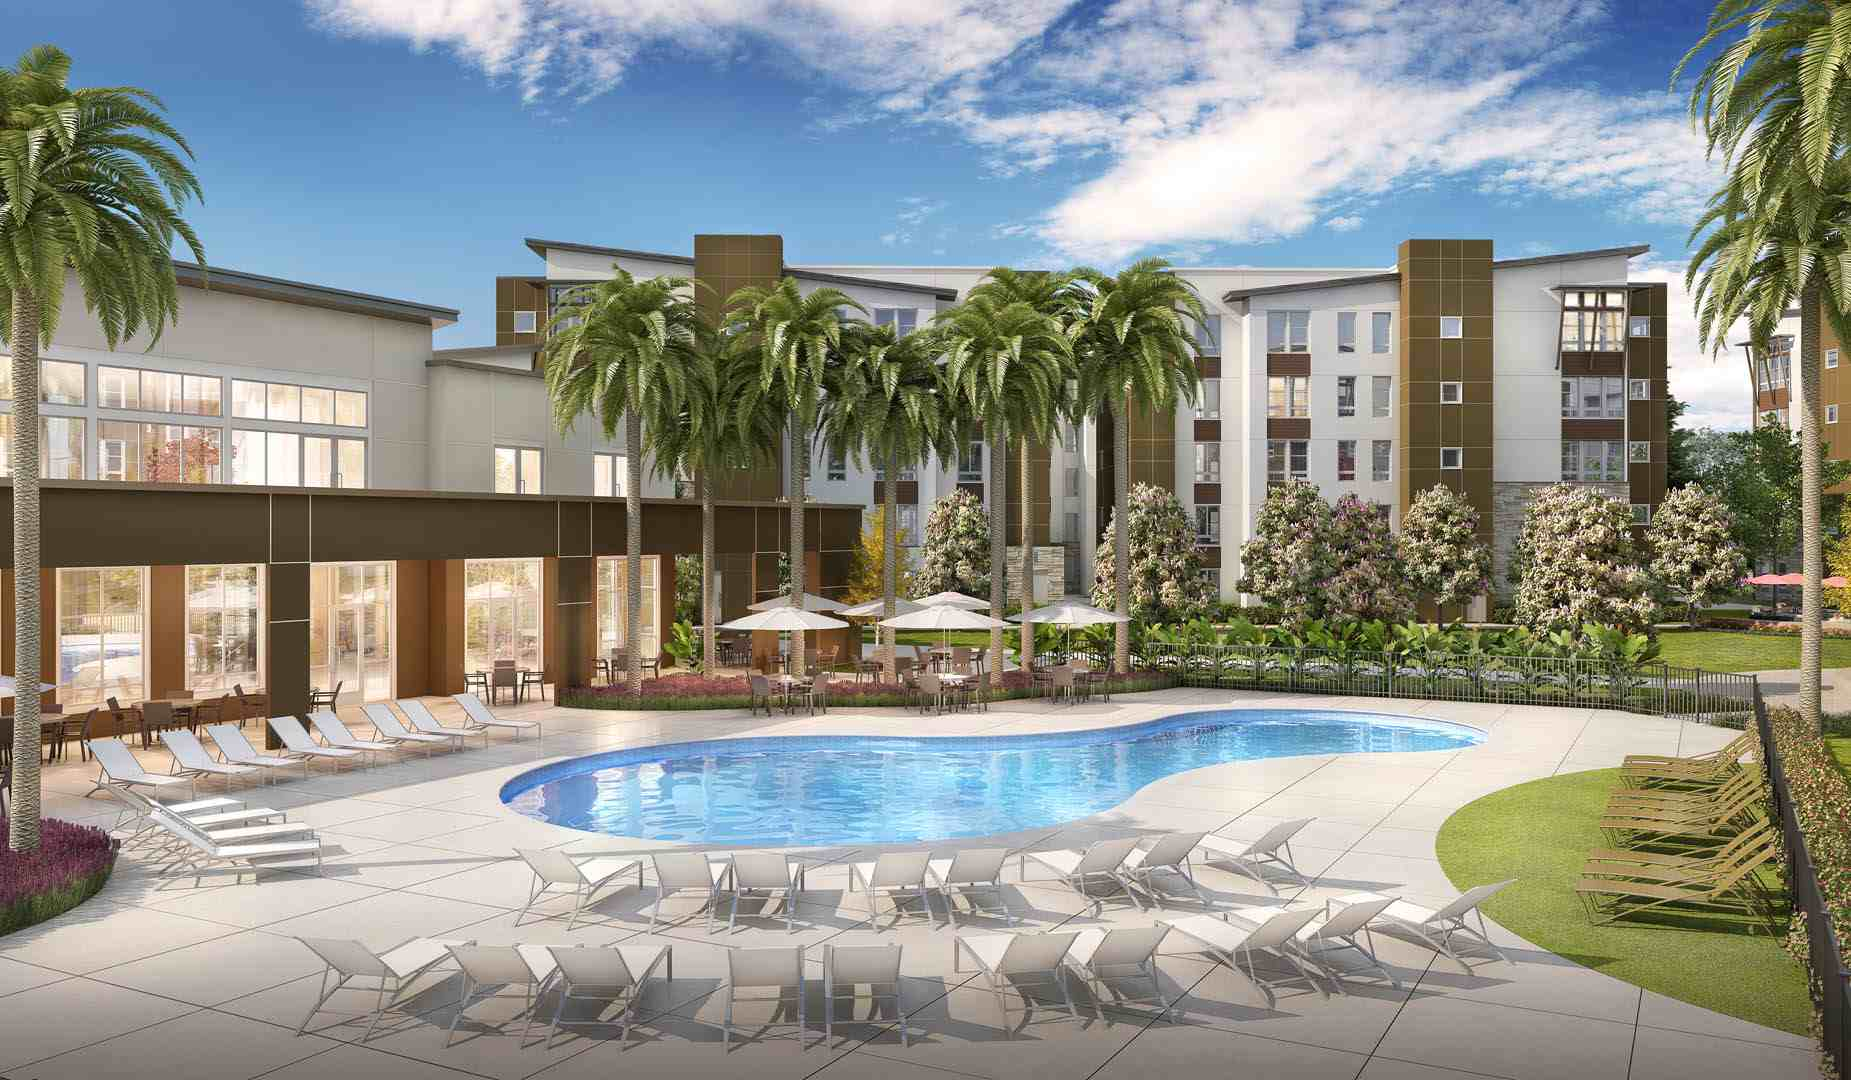 The-Crossings-Student-Living-Sacramento-CA-Poolside-Unilodgers